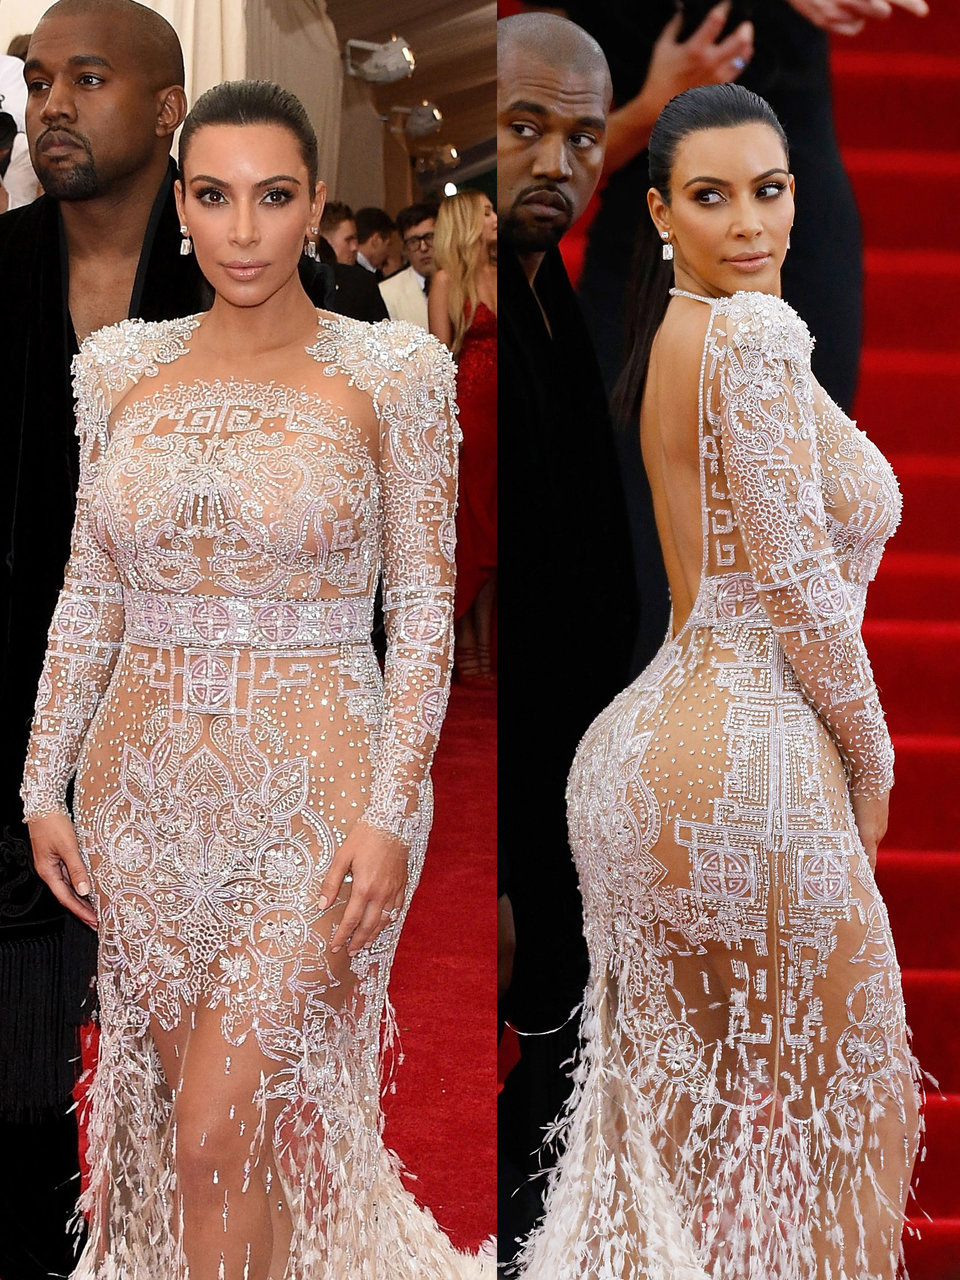 that same evening kim kardashian west wore a glittering silver gown that left little to the imagination